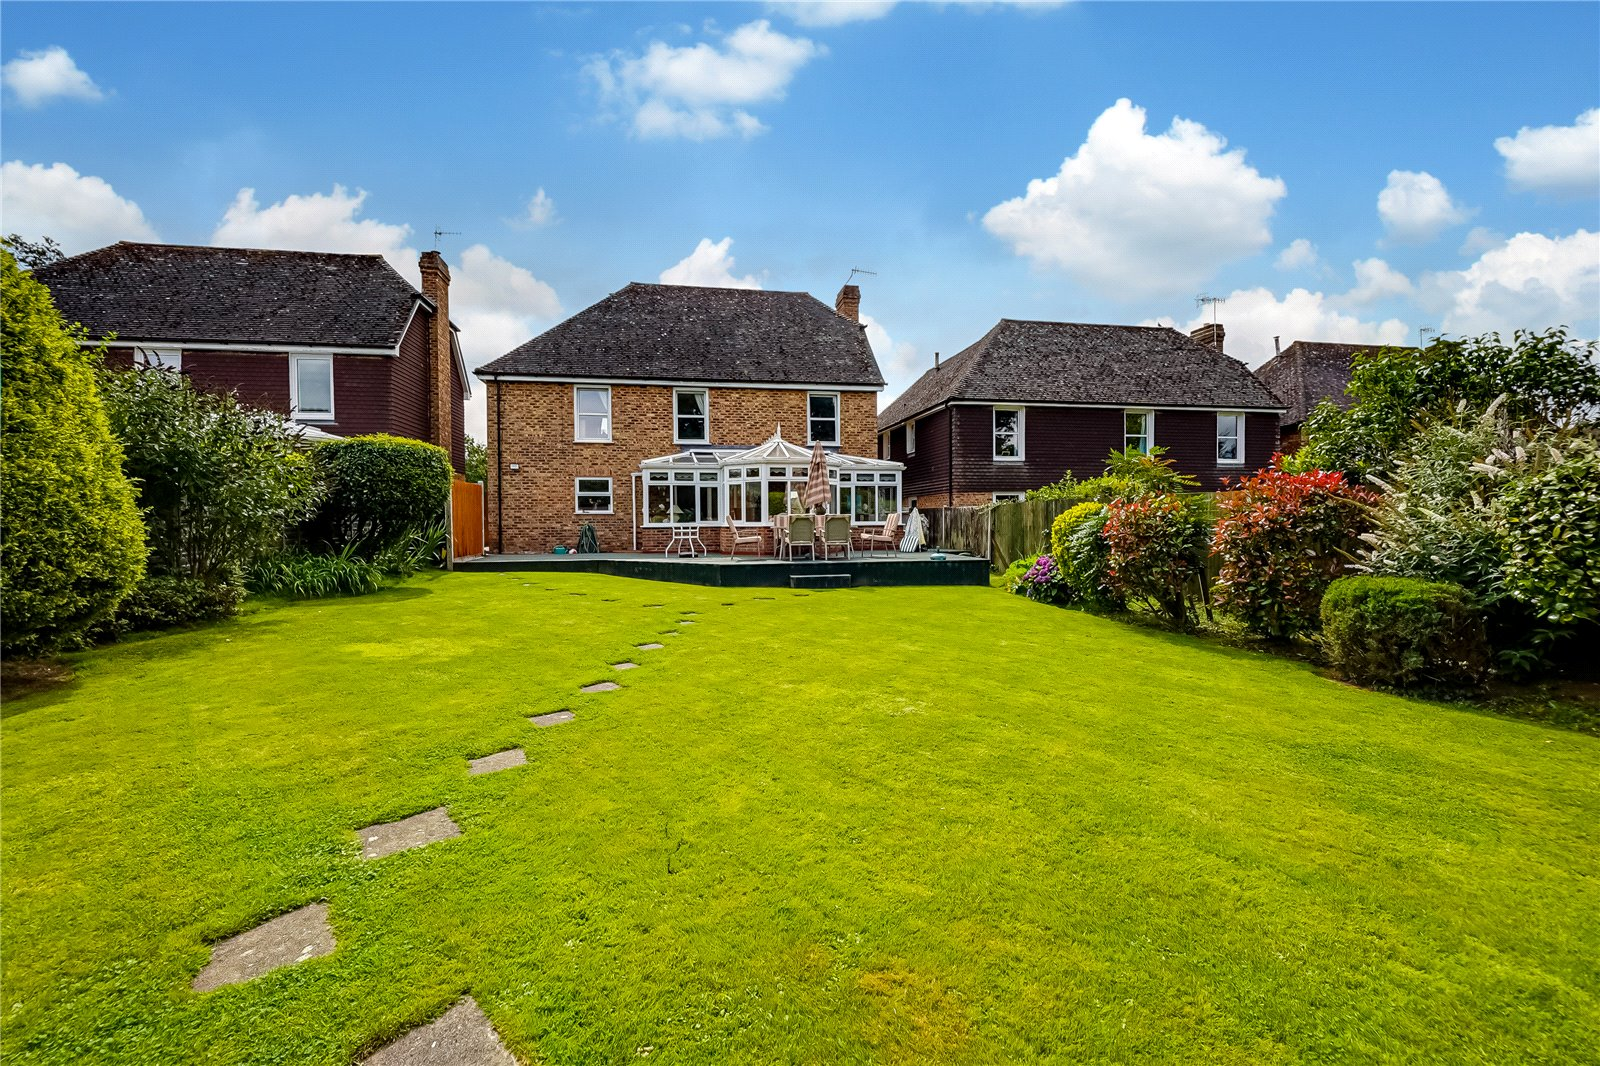 5 bed house for sale in West Street, Hunton 1